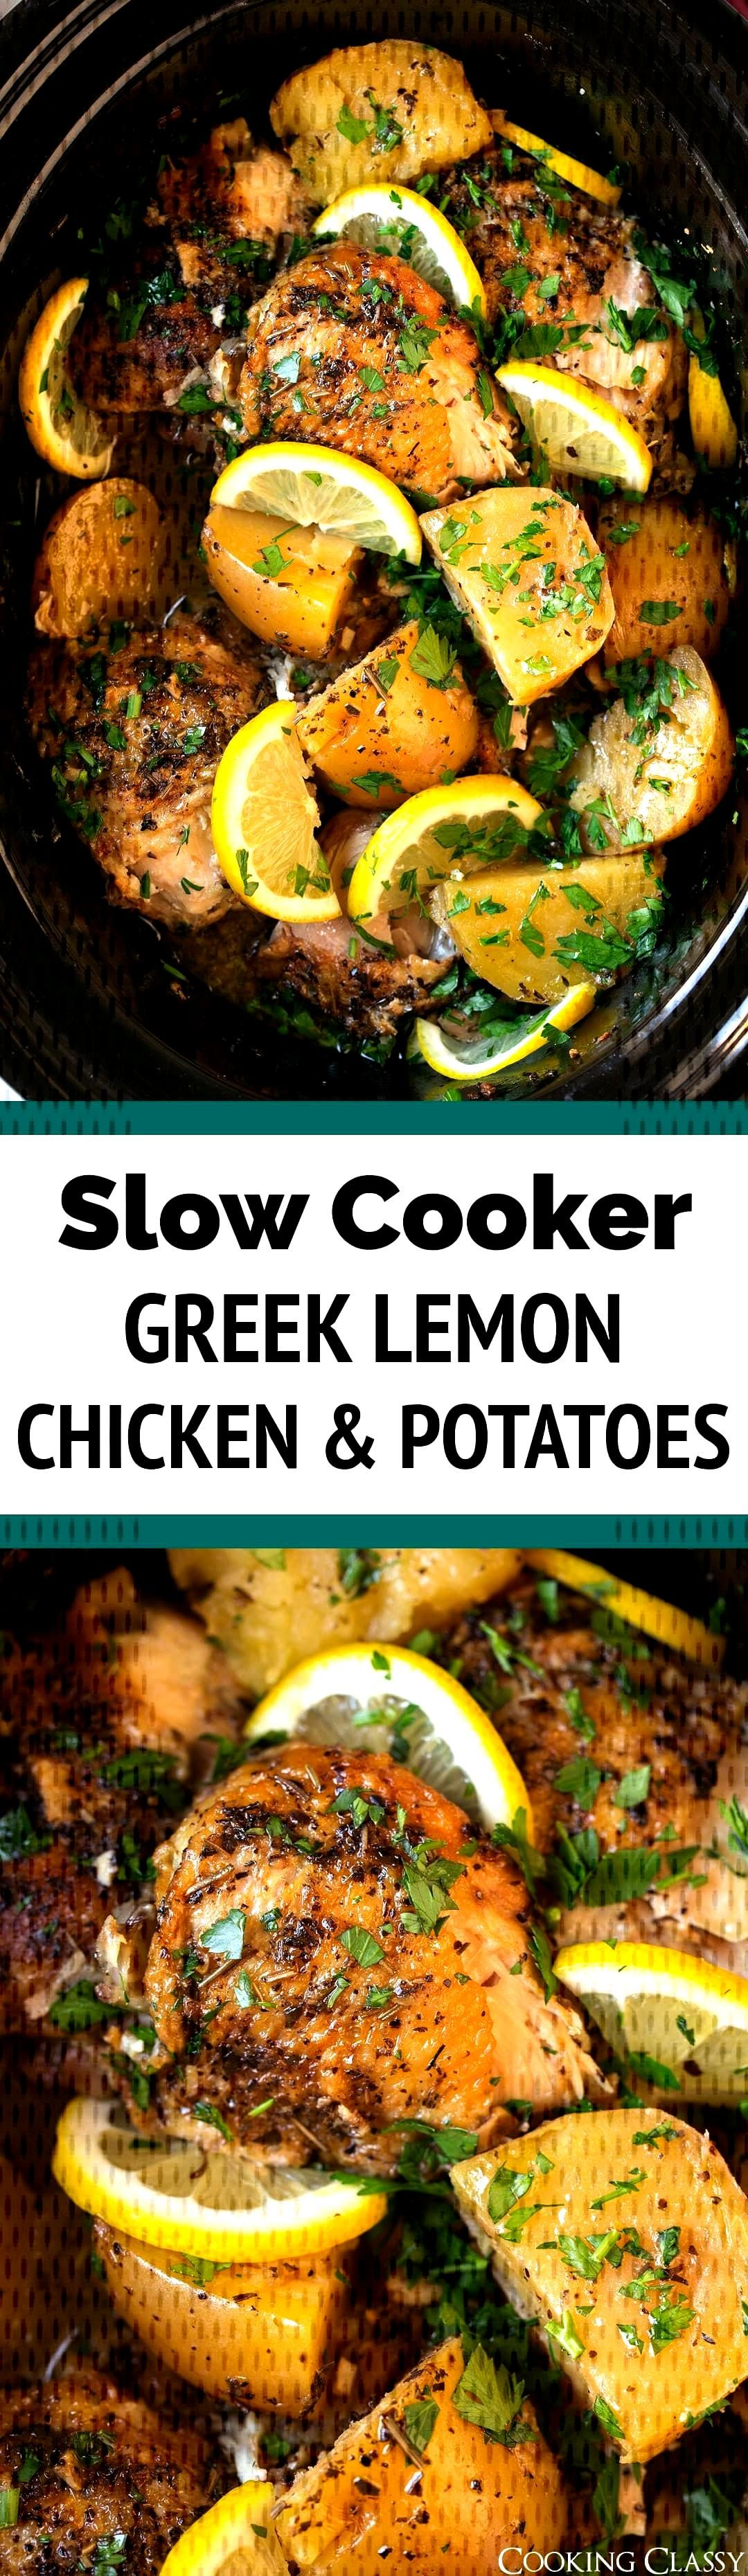 Slow Cooker Greek Lemon Chicken and Potatoes - such a delicious bright flavor and it's oh so tender